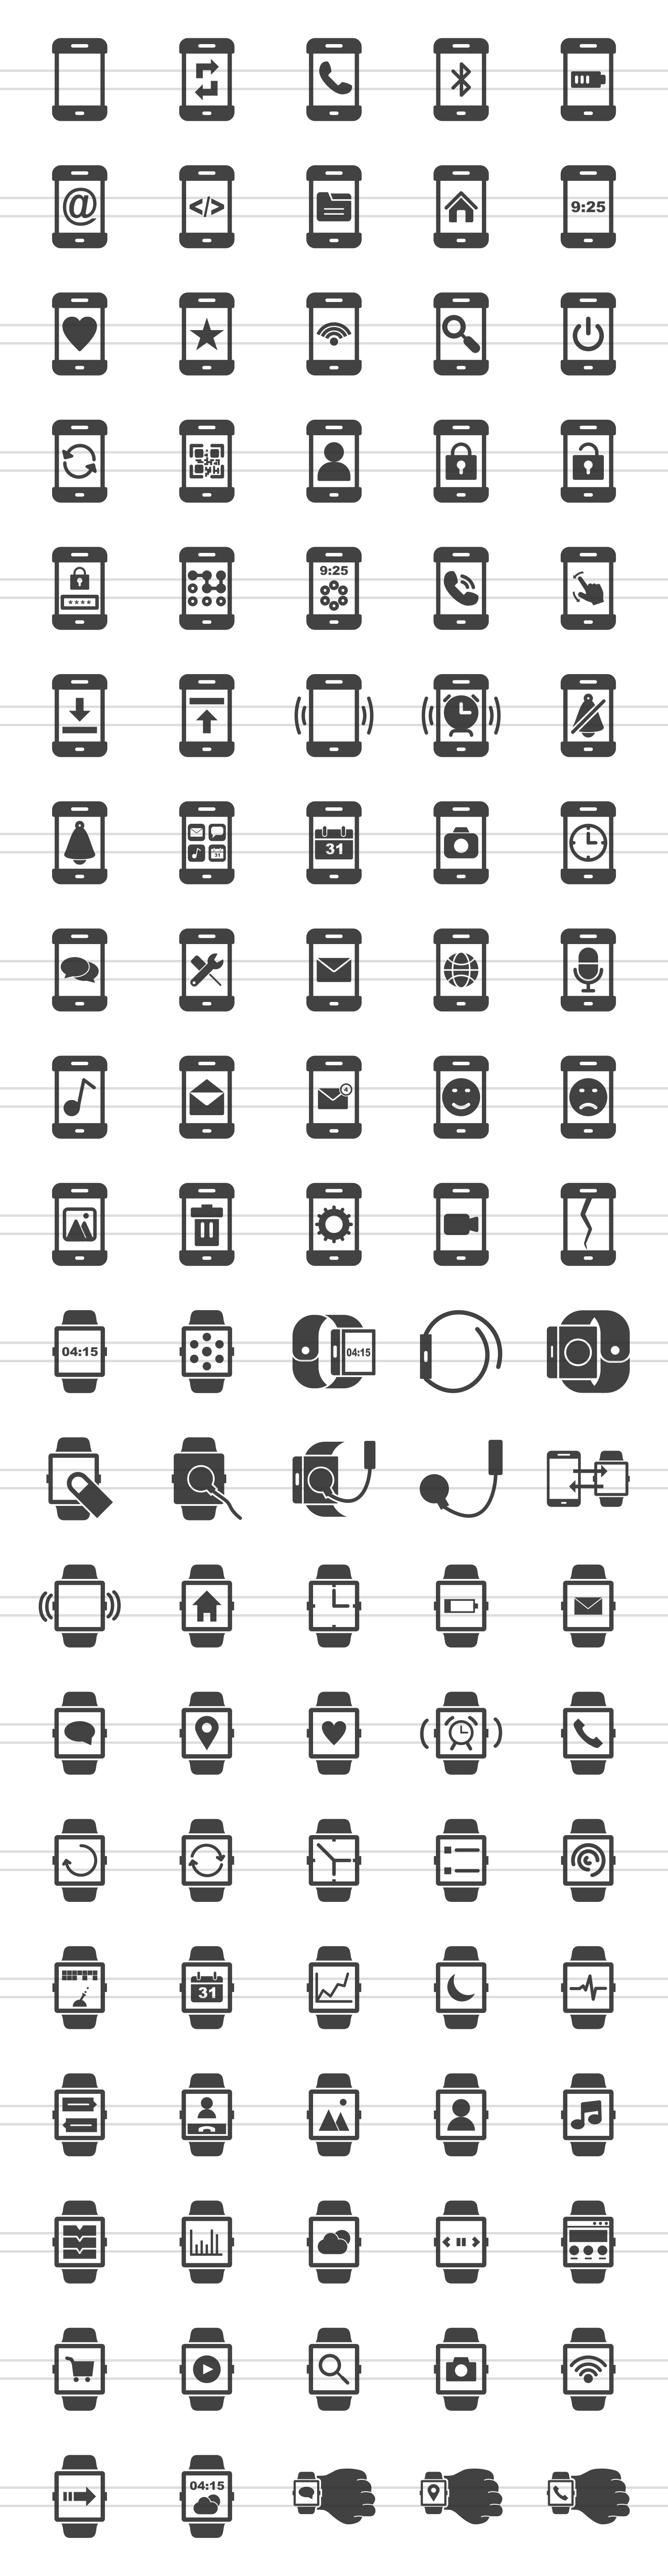 100 Smartphone & Smartwatch Glyph Icons example image 2